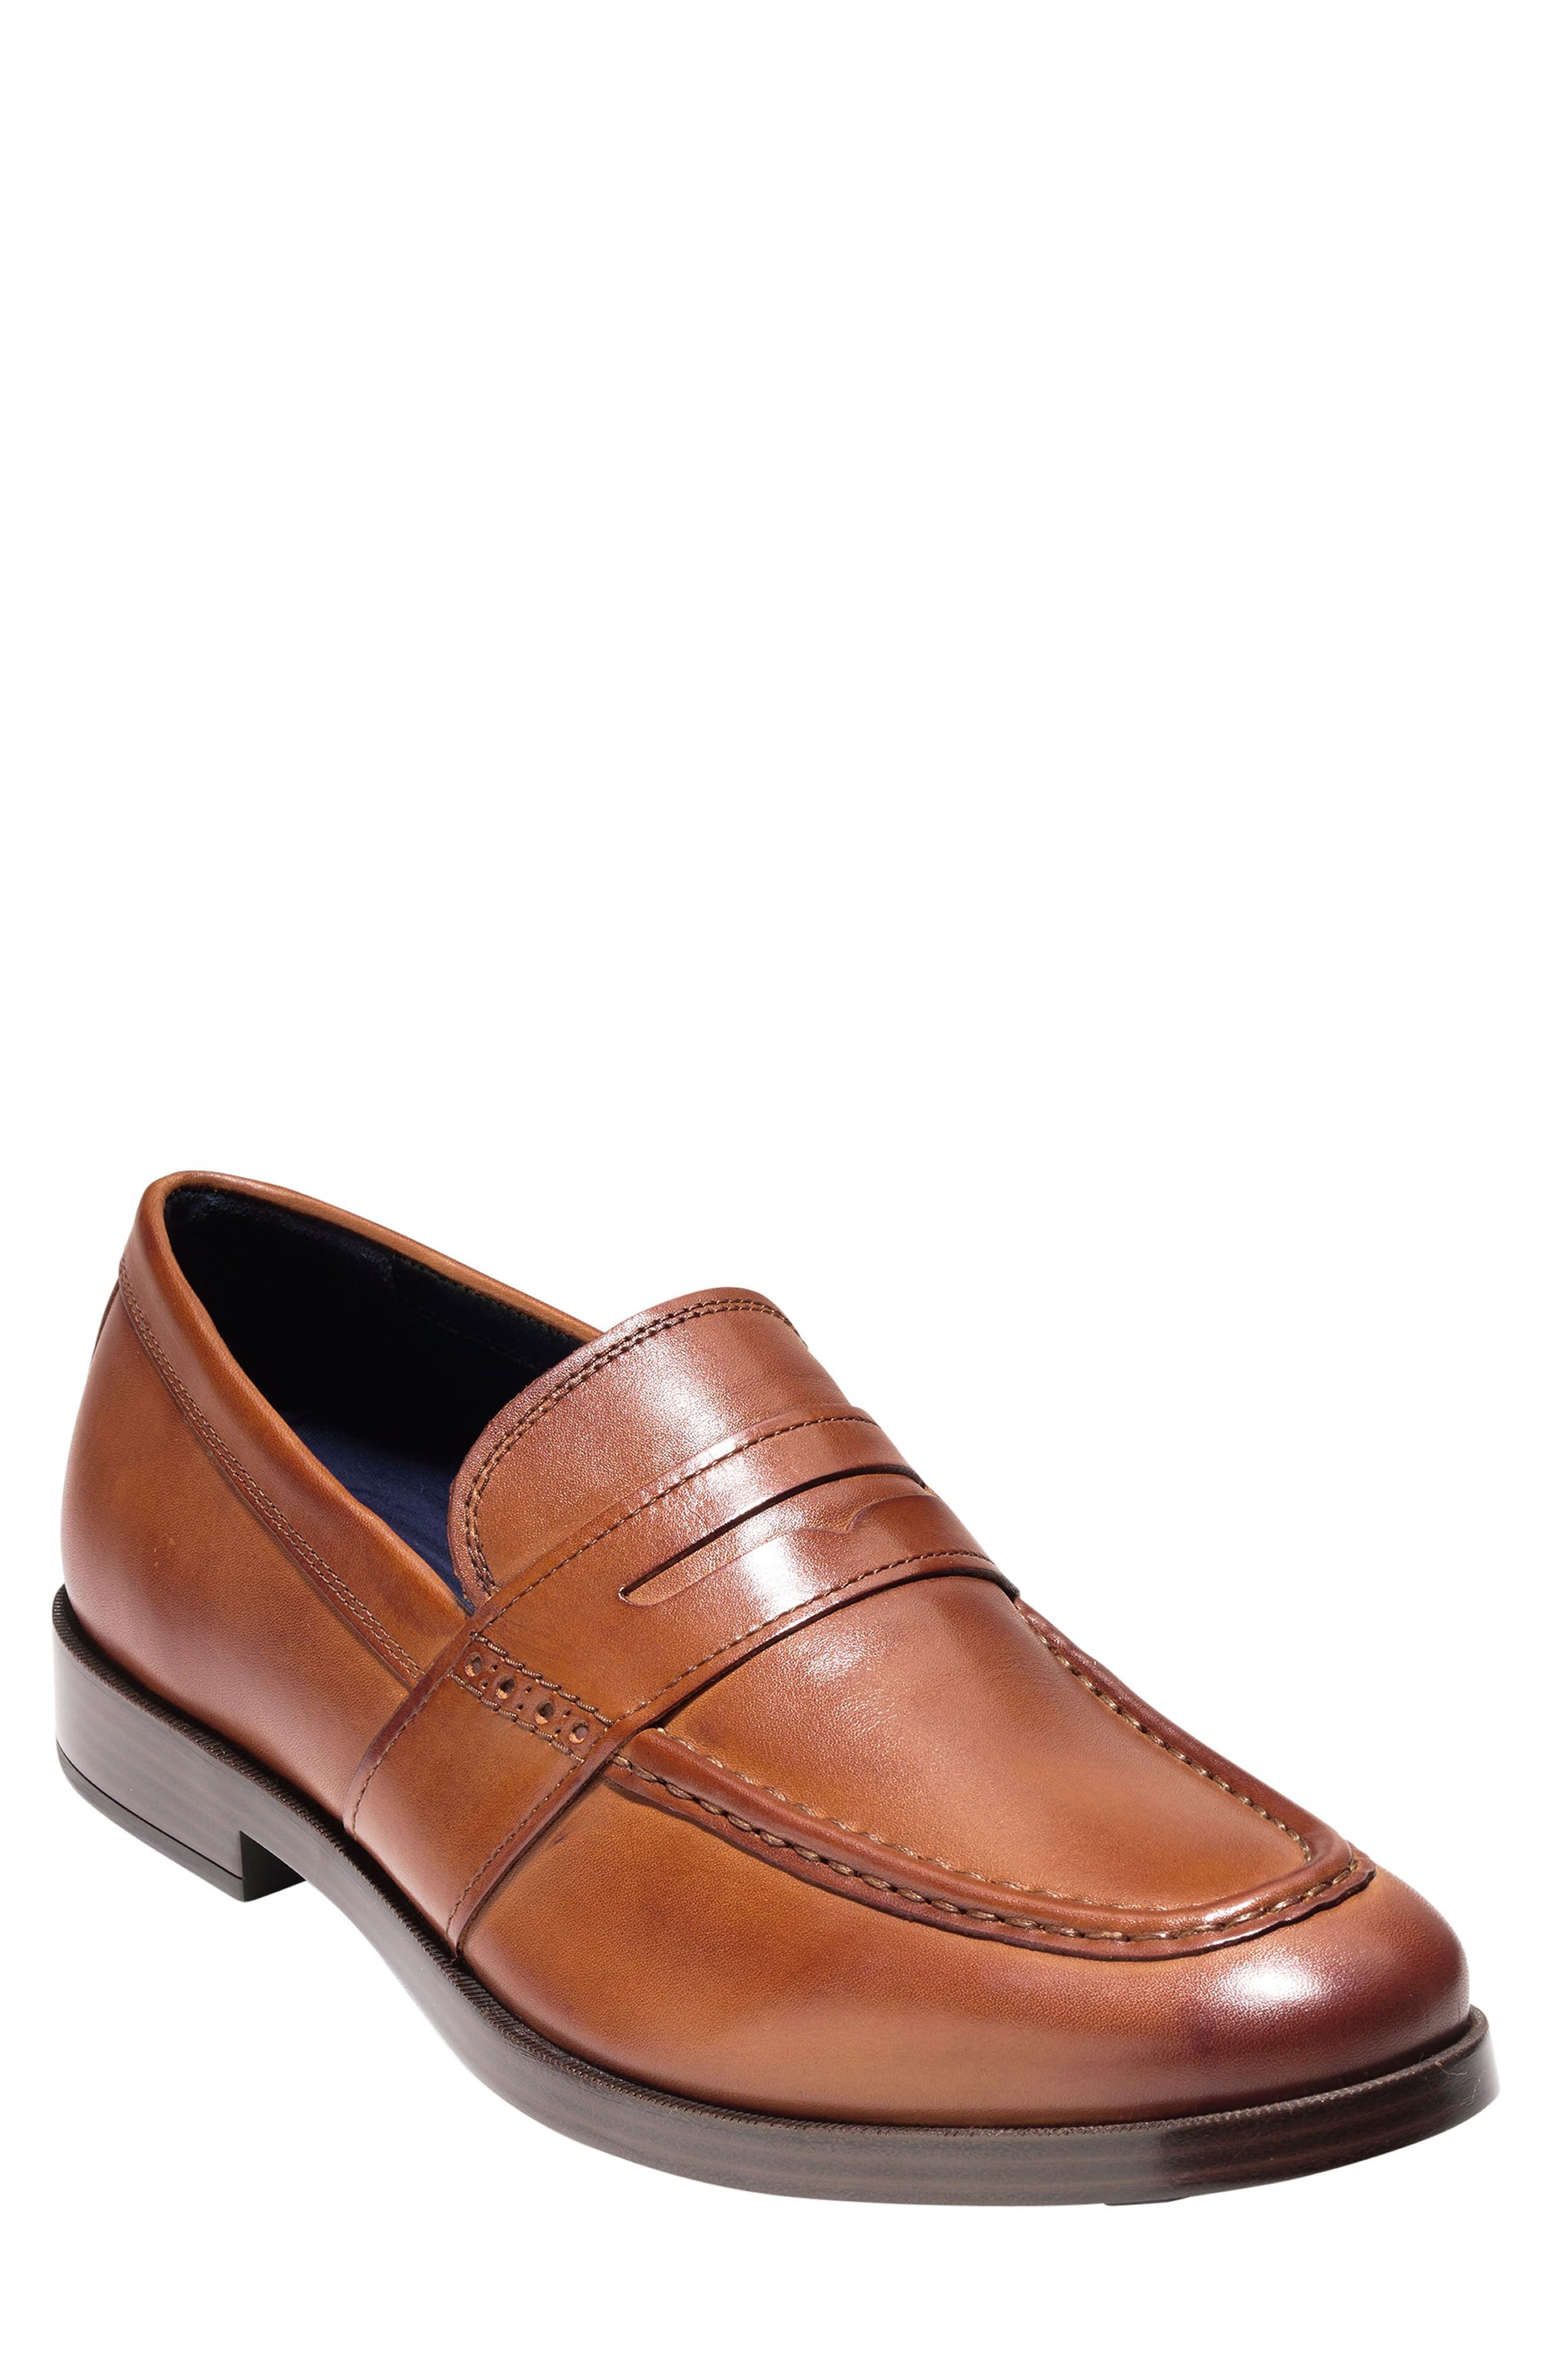 COLE HAAN, Jefferson Grand Penny Loafer, Main thumbnail 1, color, BRITISH TAN LEATHER